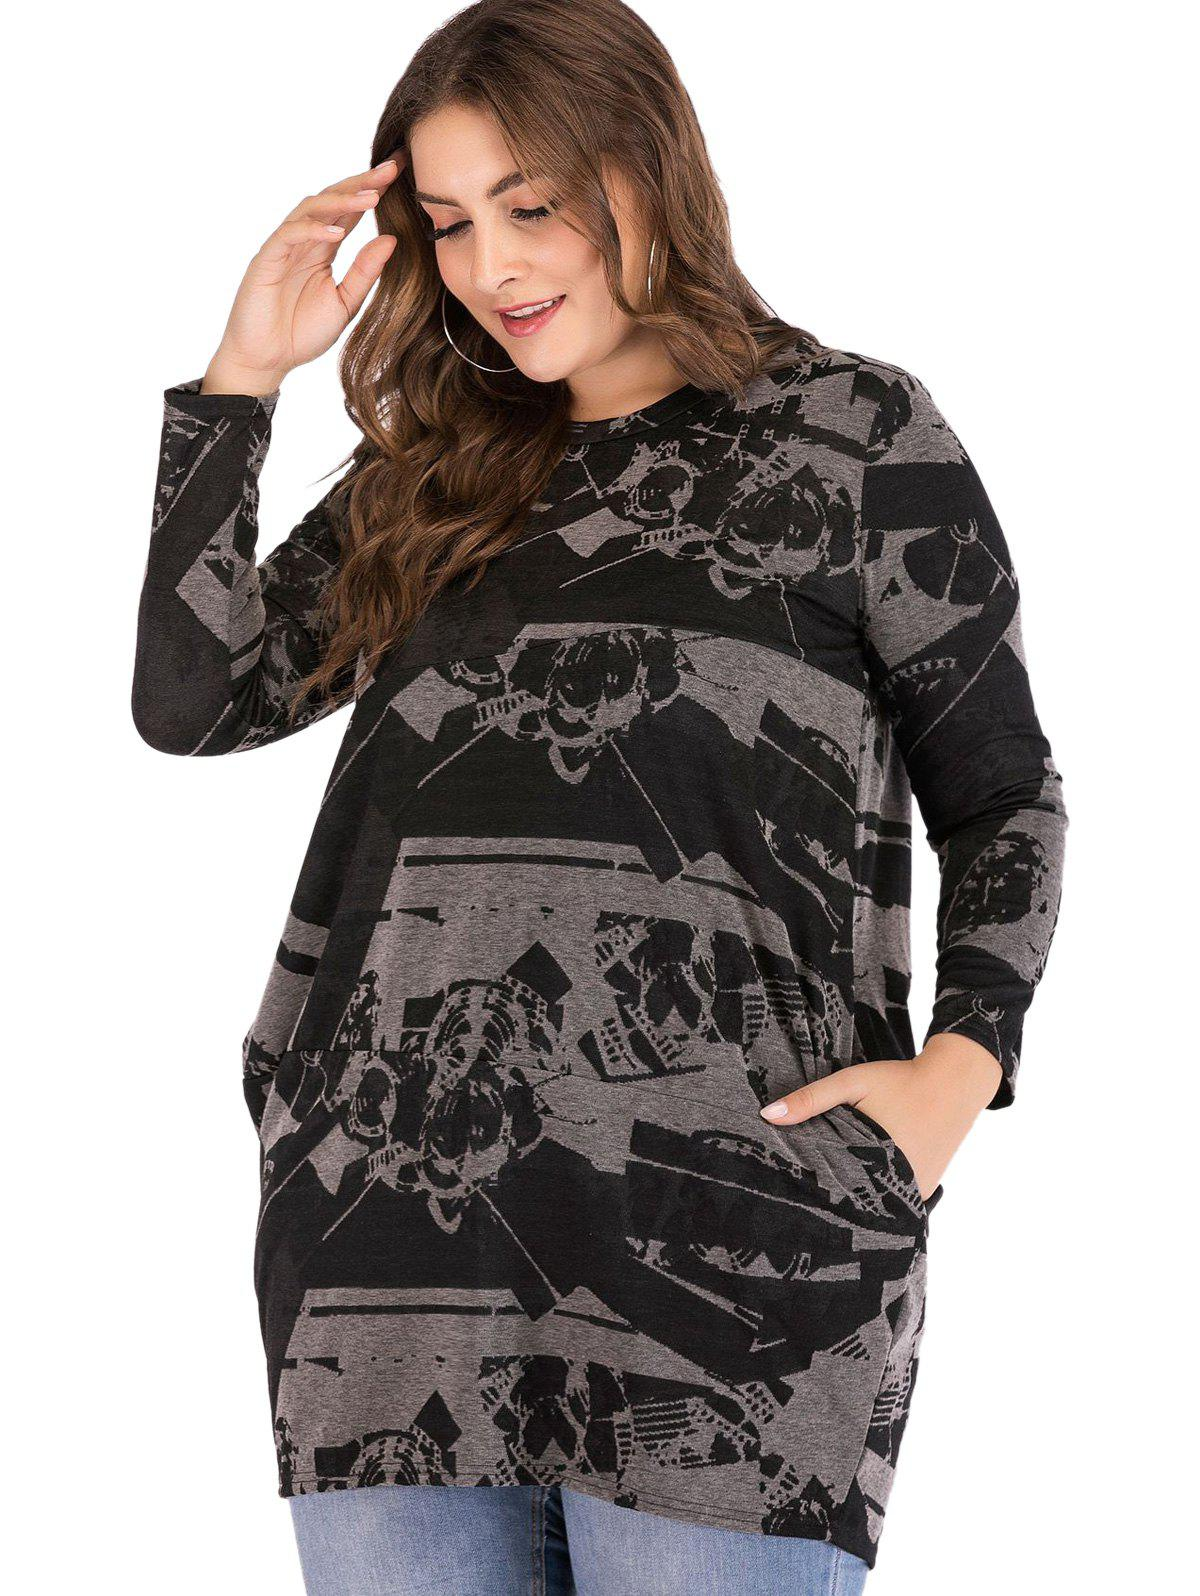 Chic Plus Size Printed Casual Pocket Top